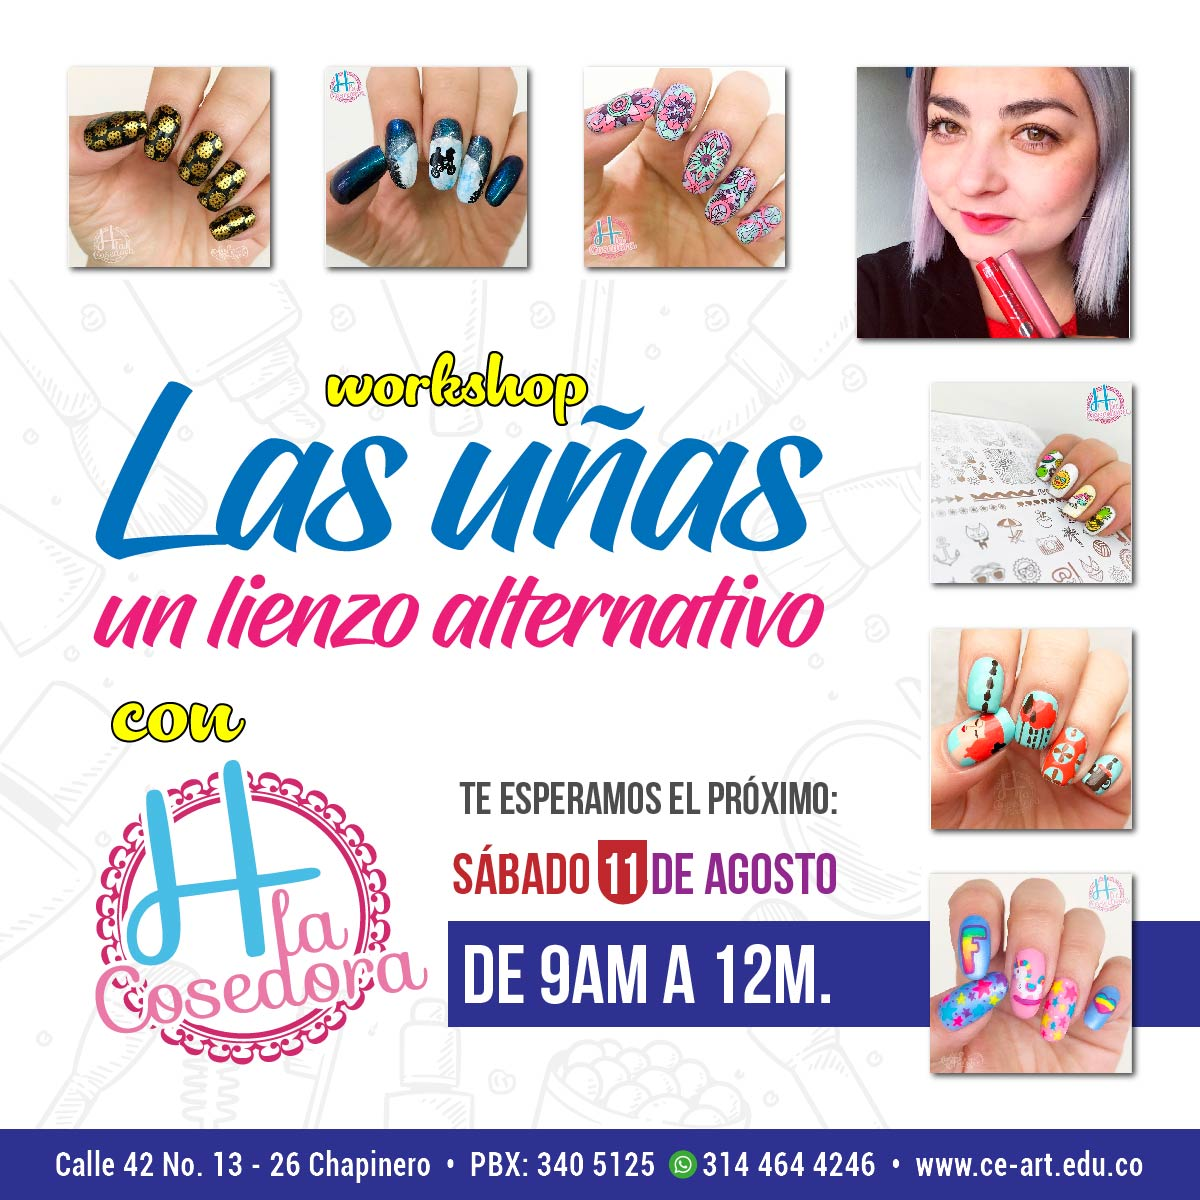 Las uñas: Un lienzo alternativo